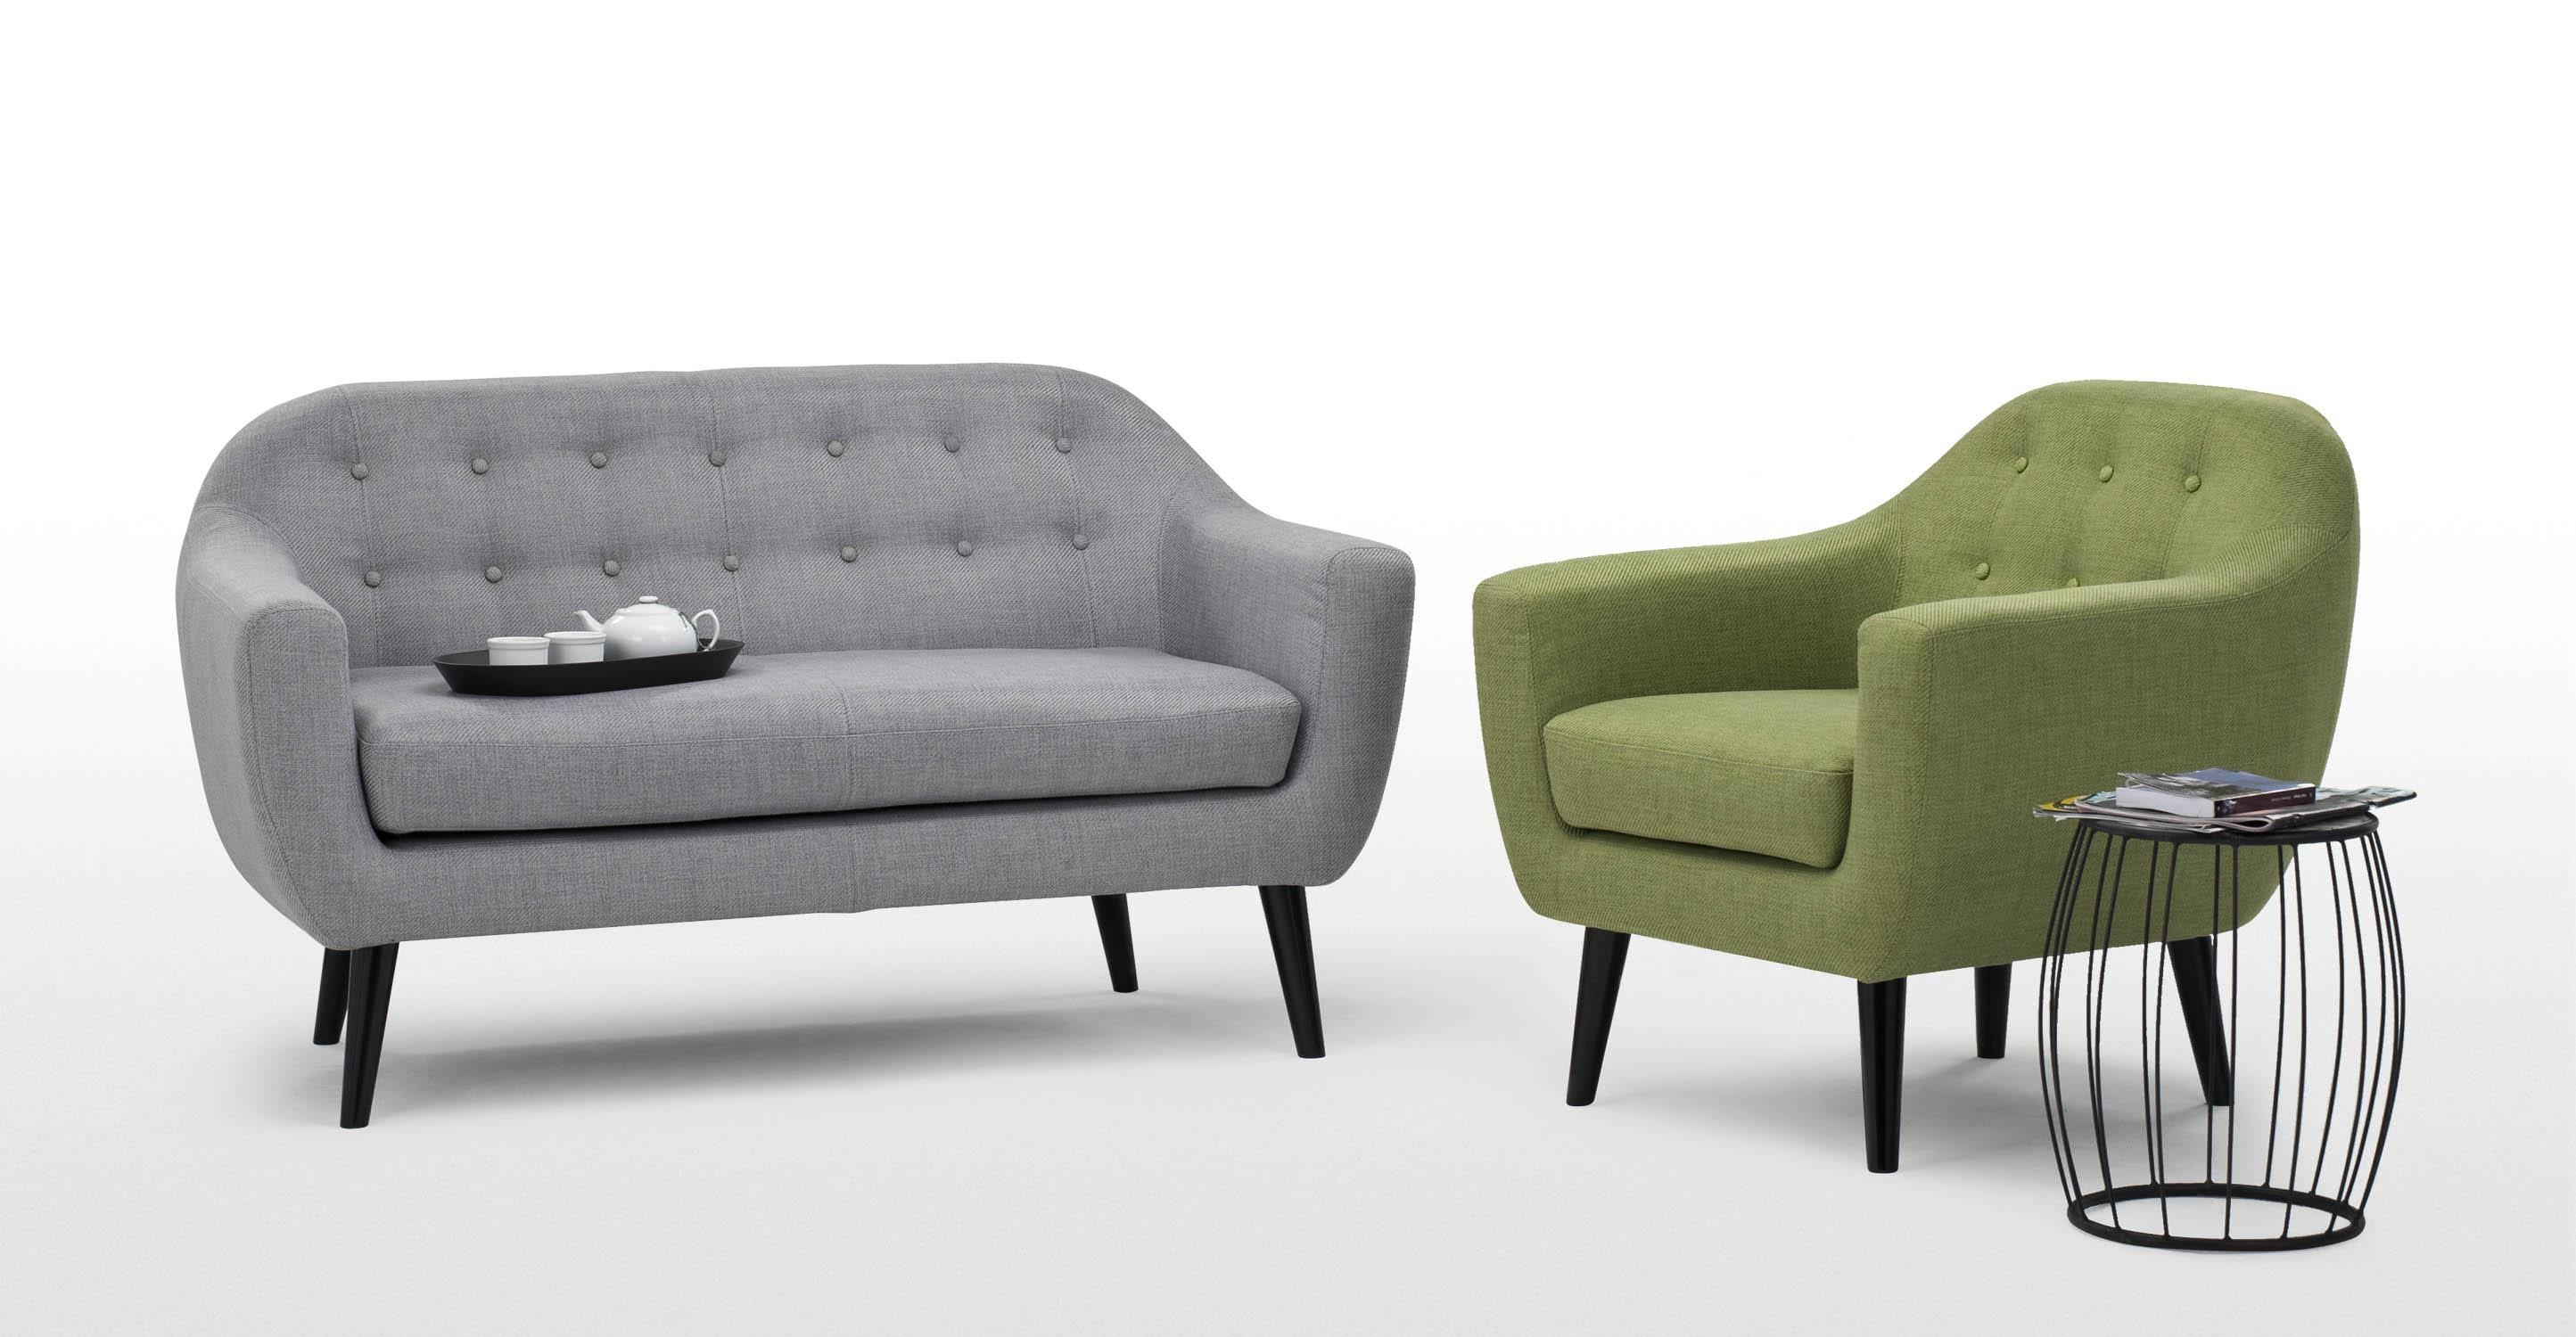 Ritchie 2 Seater Sofa In Pearl Grey | Made With Regard To Grey Sofa Chairs (View 11 of 20)